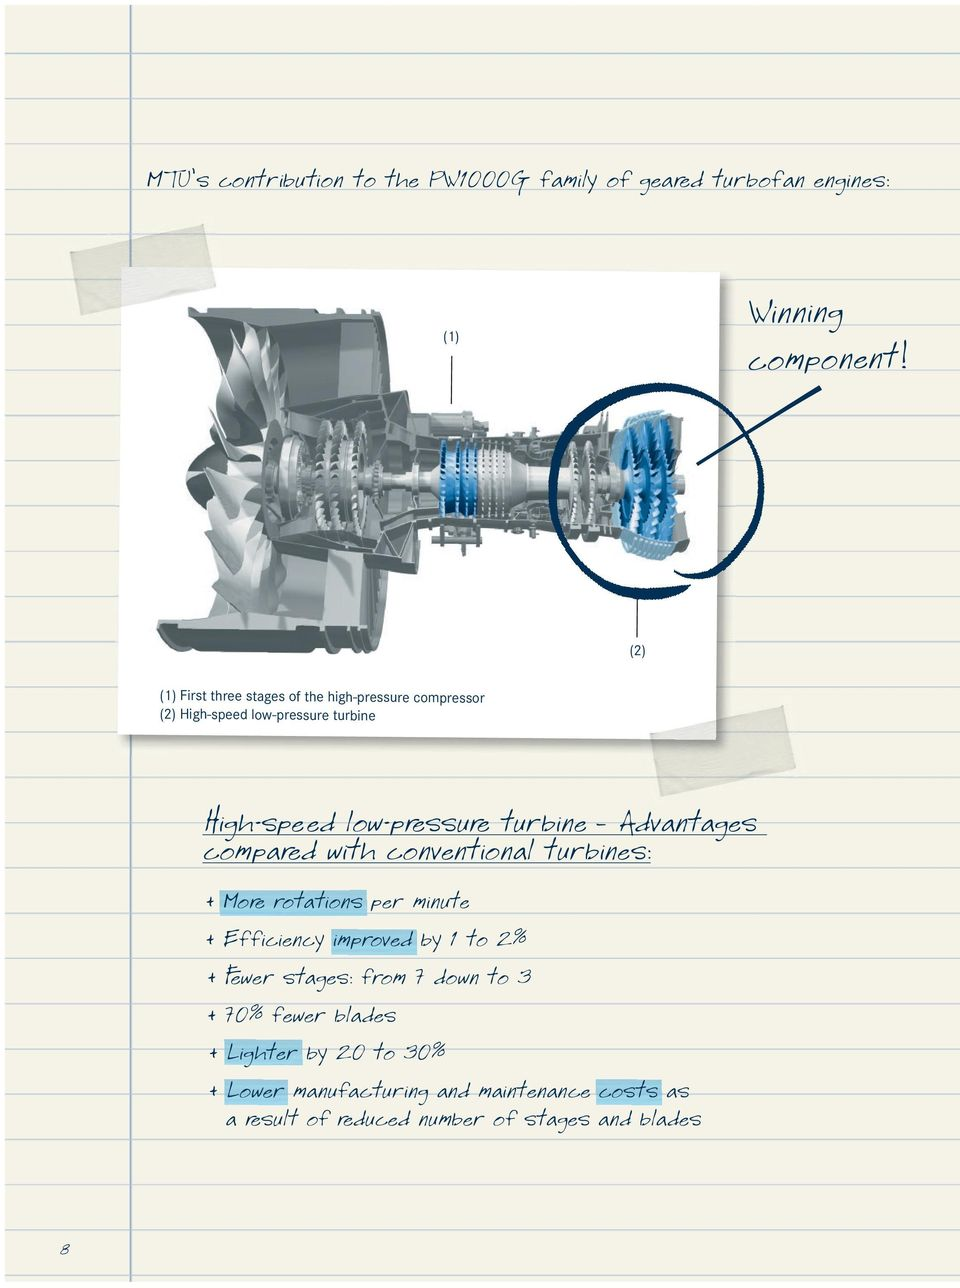 turbine Advantages compared with conventional turbines: + More rotations per minute + Efficiency improved by 1 to 2% + Fewer